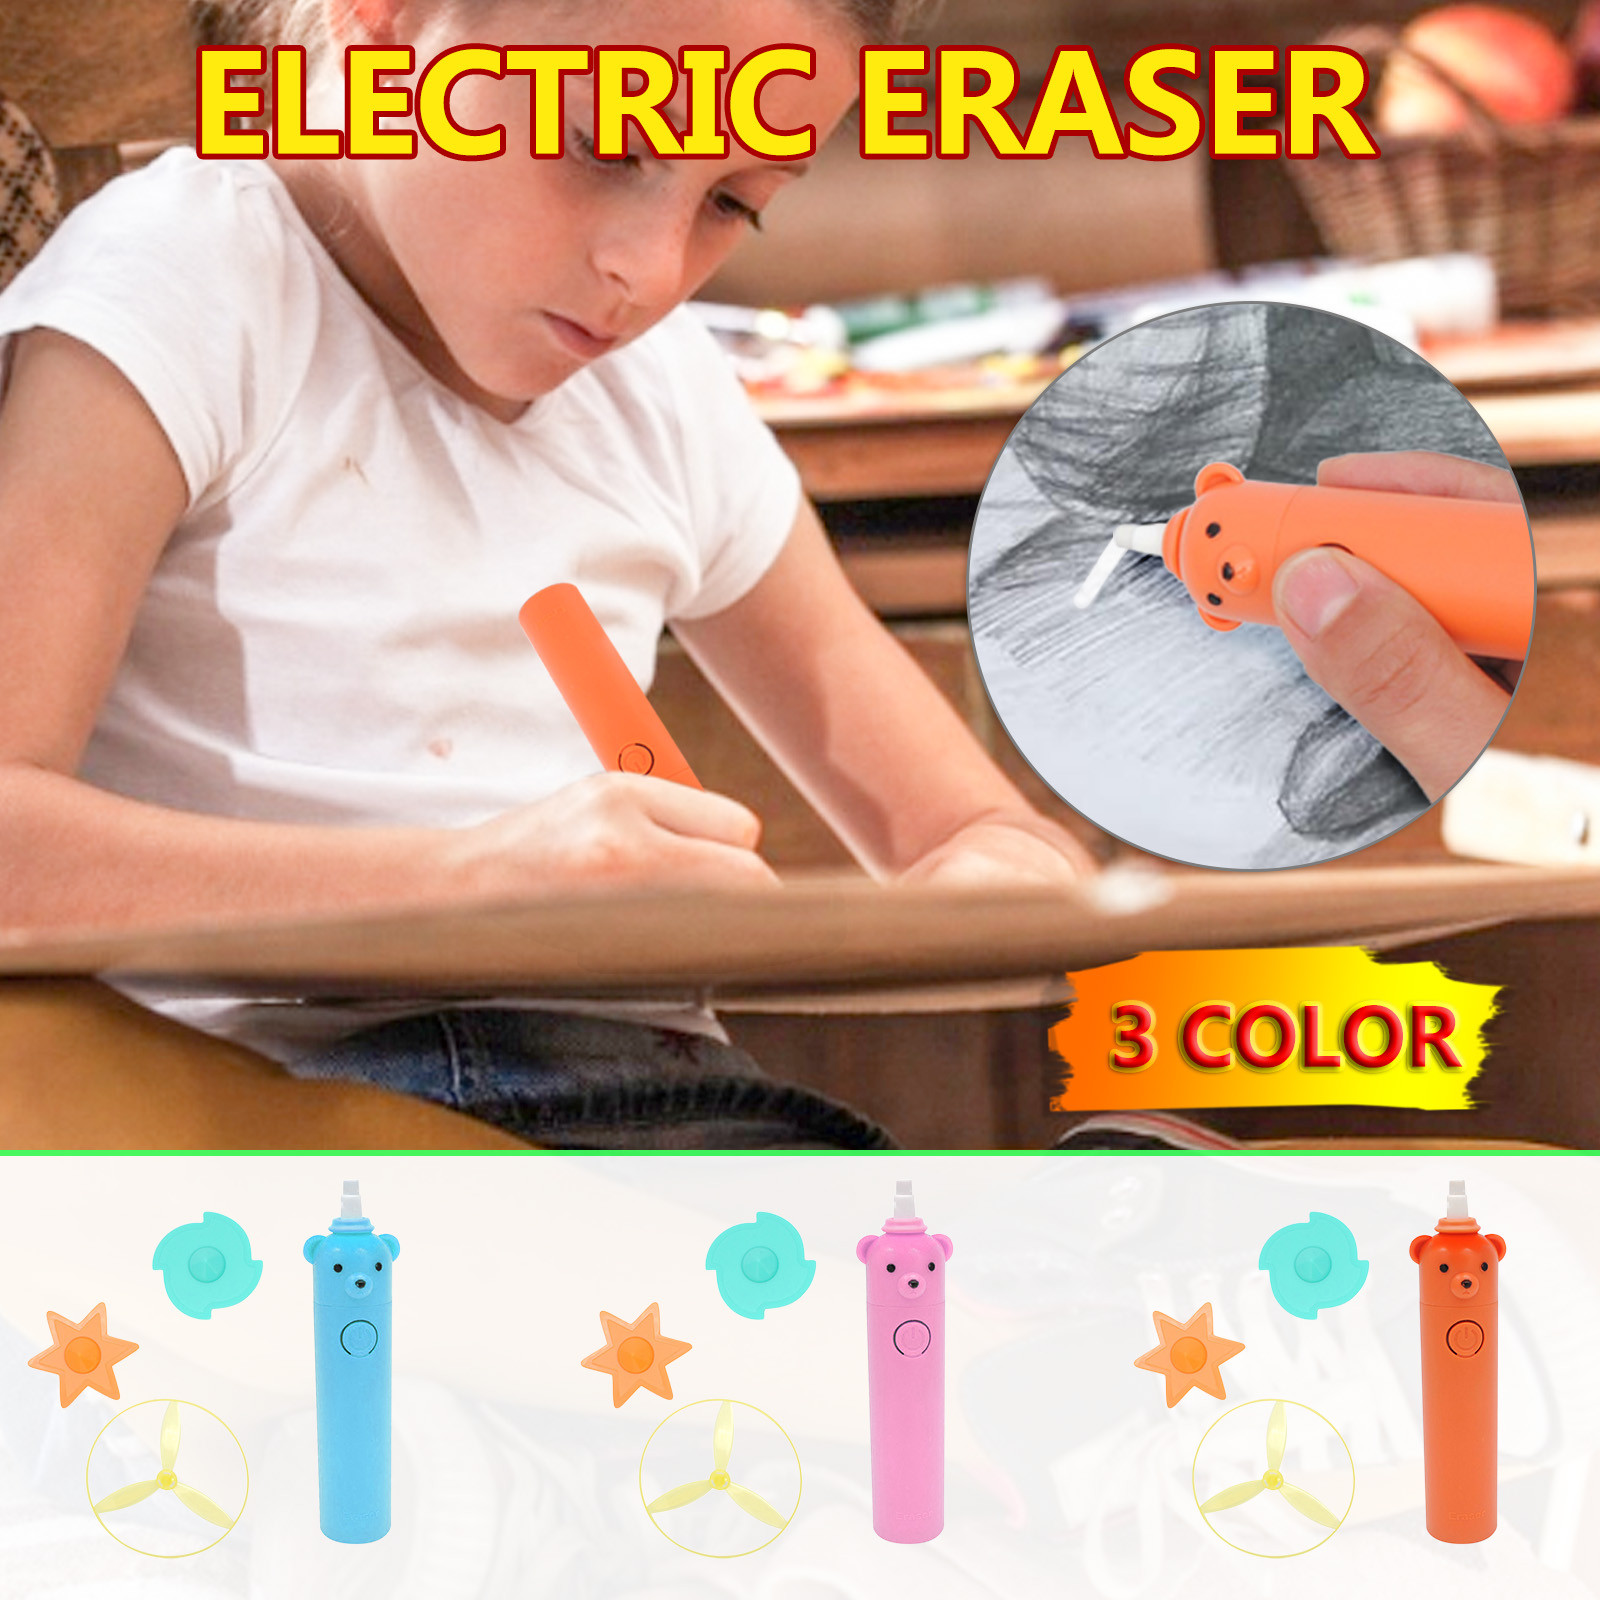 Sketch Highlight Electric Eraser Children's Drawing And Writing Electric Eraser Automatic School Supplies Leather Stationery New